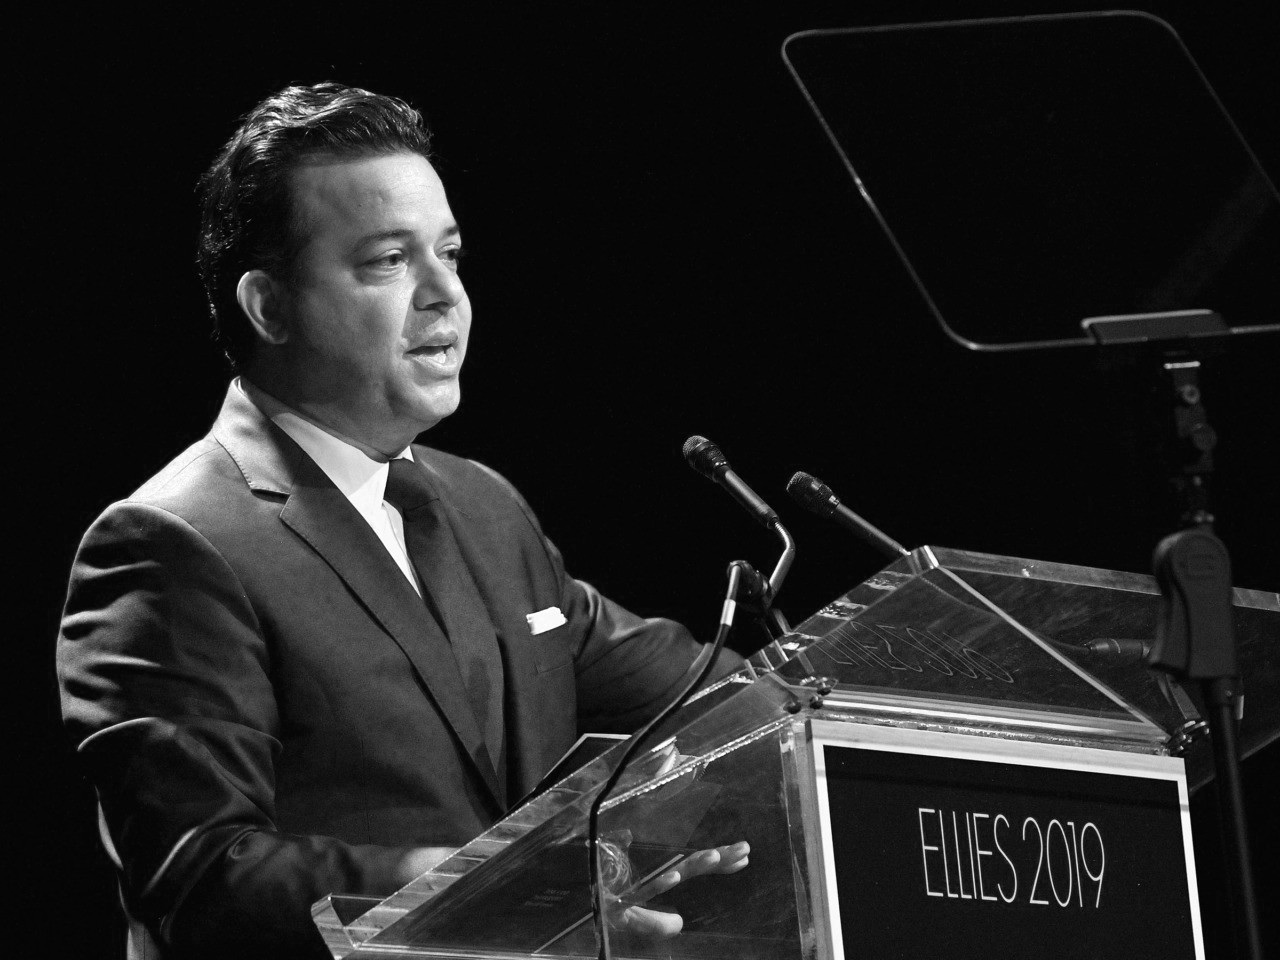 John Avlon - Author, columnist, commentator